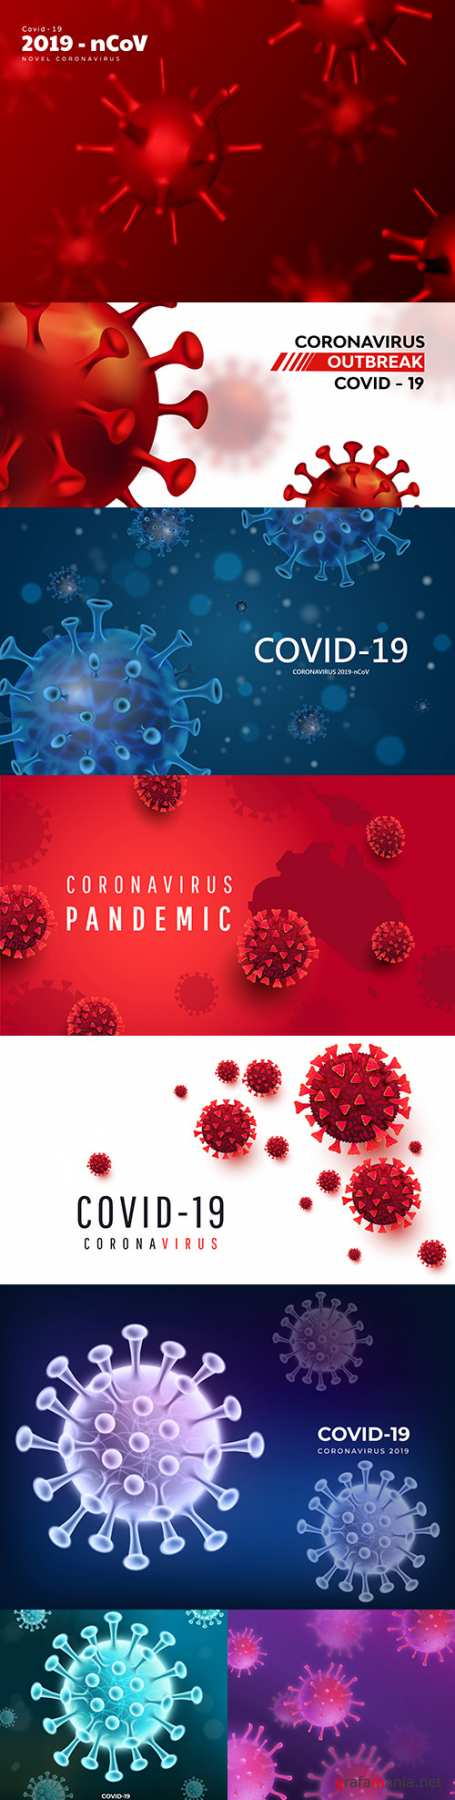 Coronavirus 2019-ncov background with realistic viral cells 5